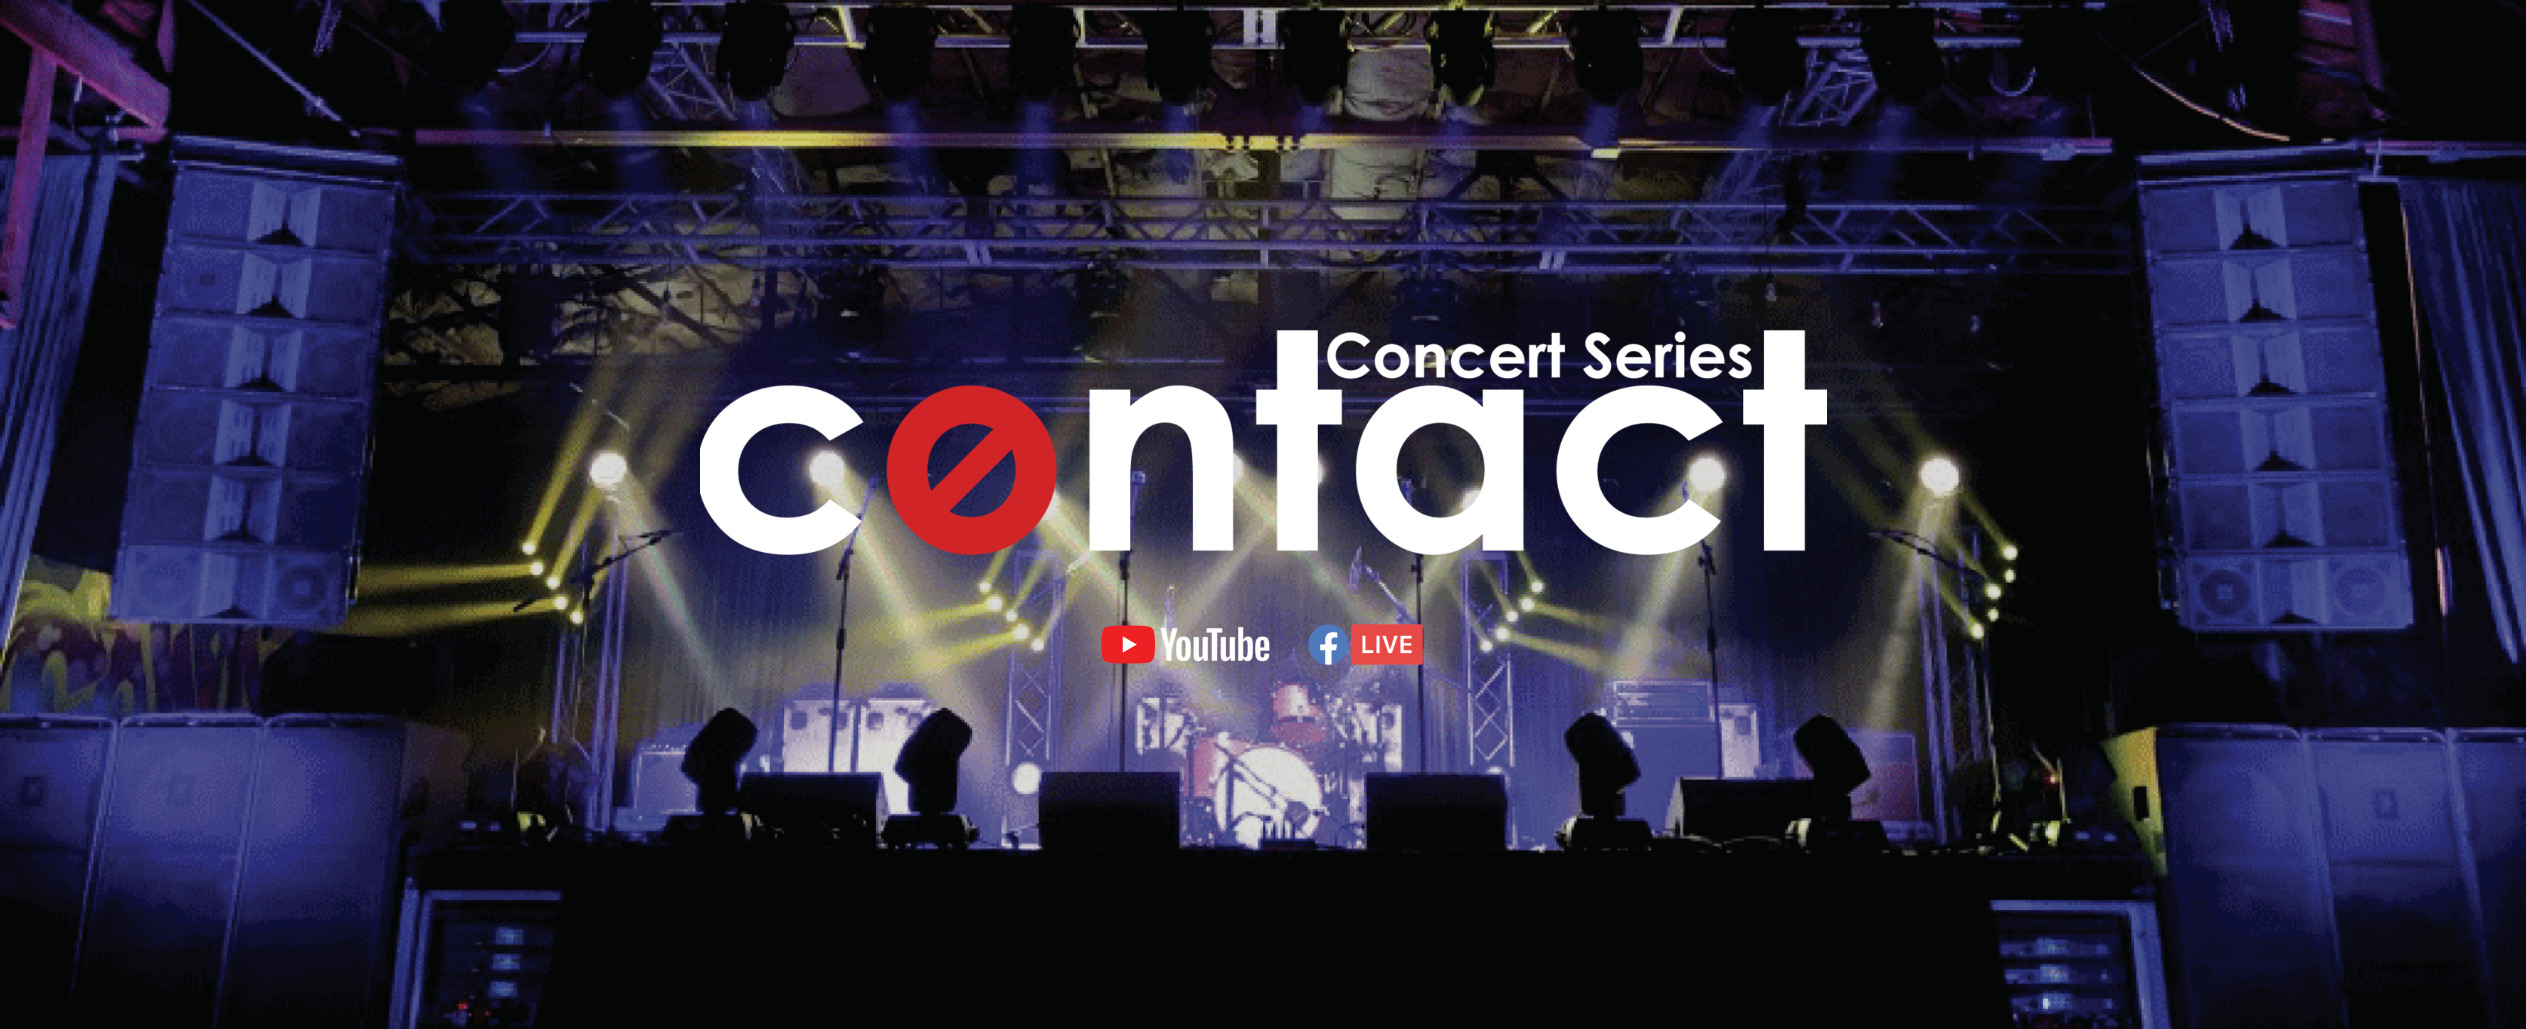 No Contact Concert Series - Live Broadcast from Codex Sound Warehouse